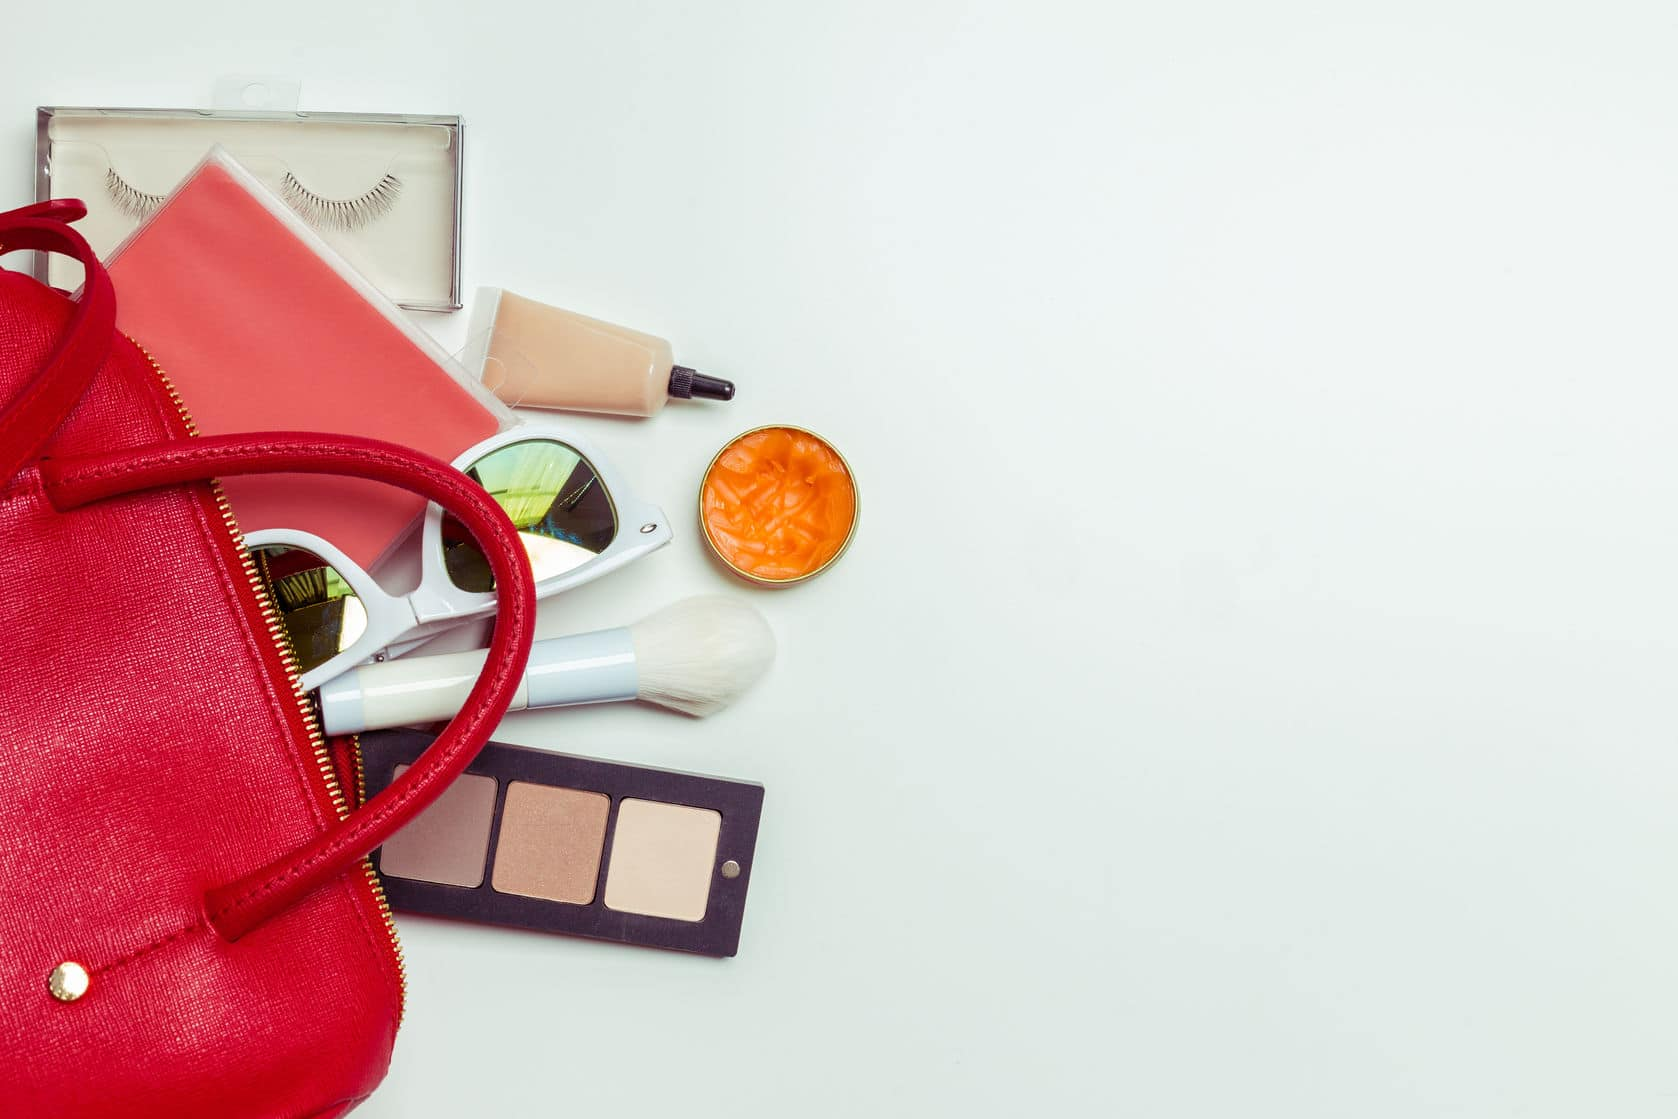 Organize your purse by removing anything you don't need every day.